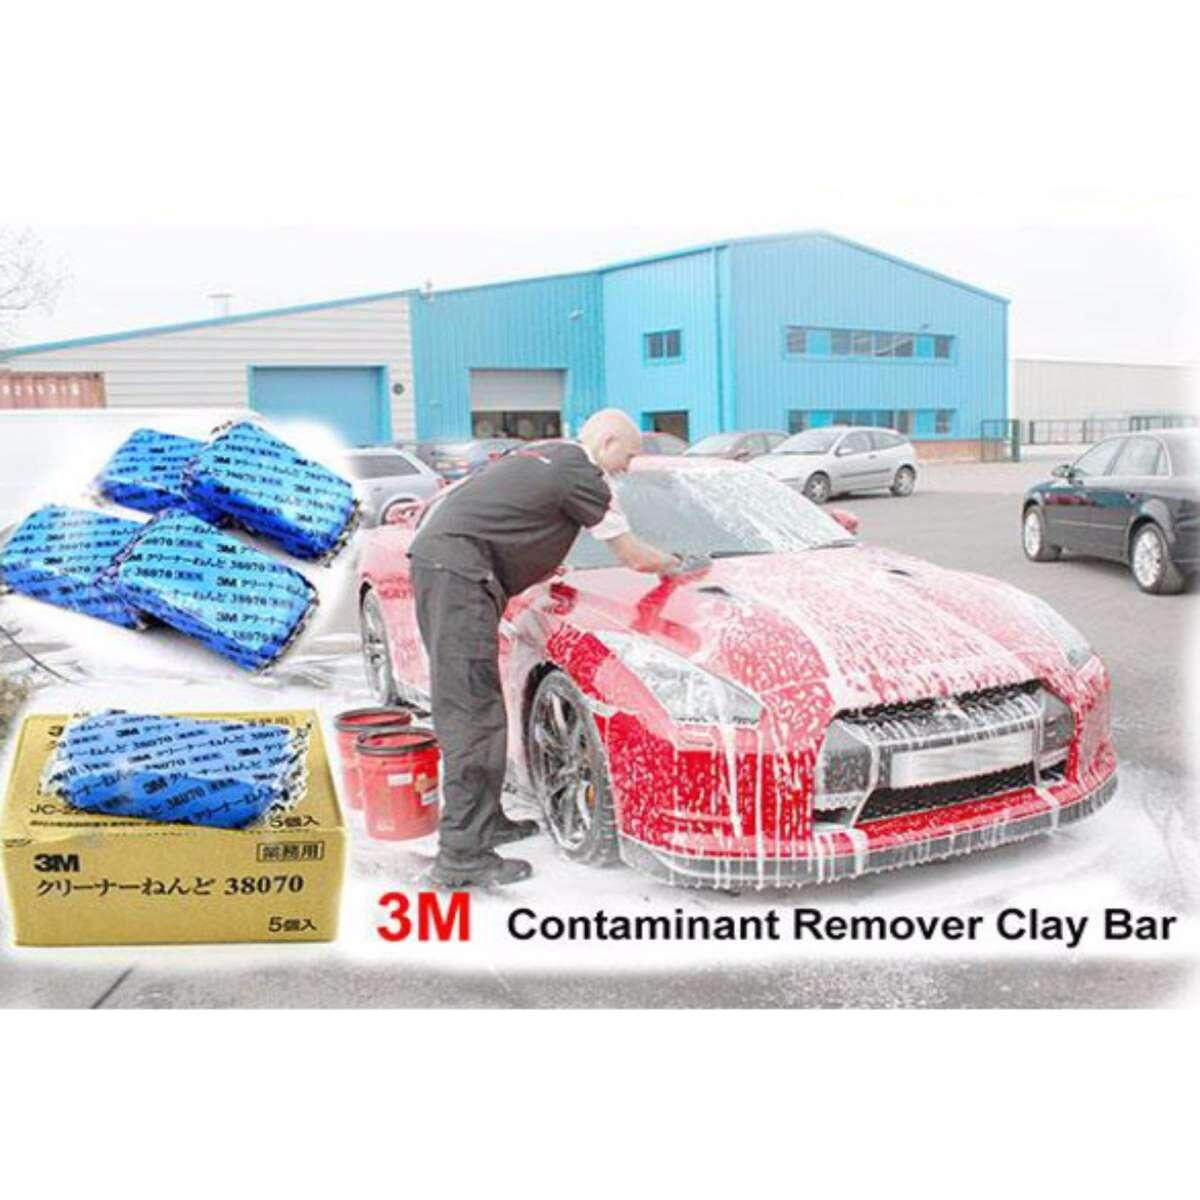 3M Car Body Contaminant Tar remover Clay Bar Stain Remover